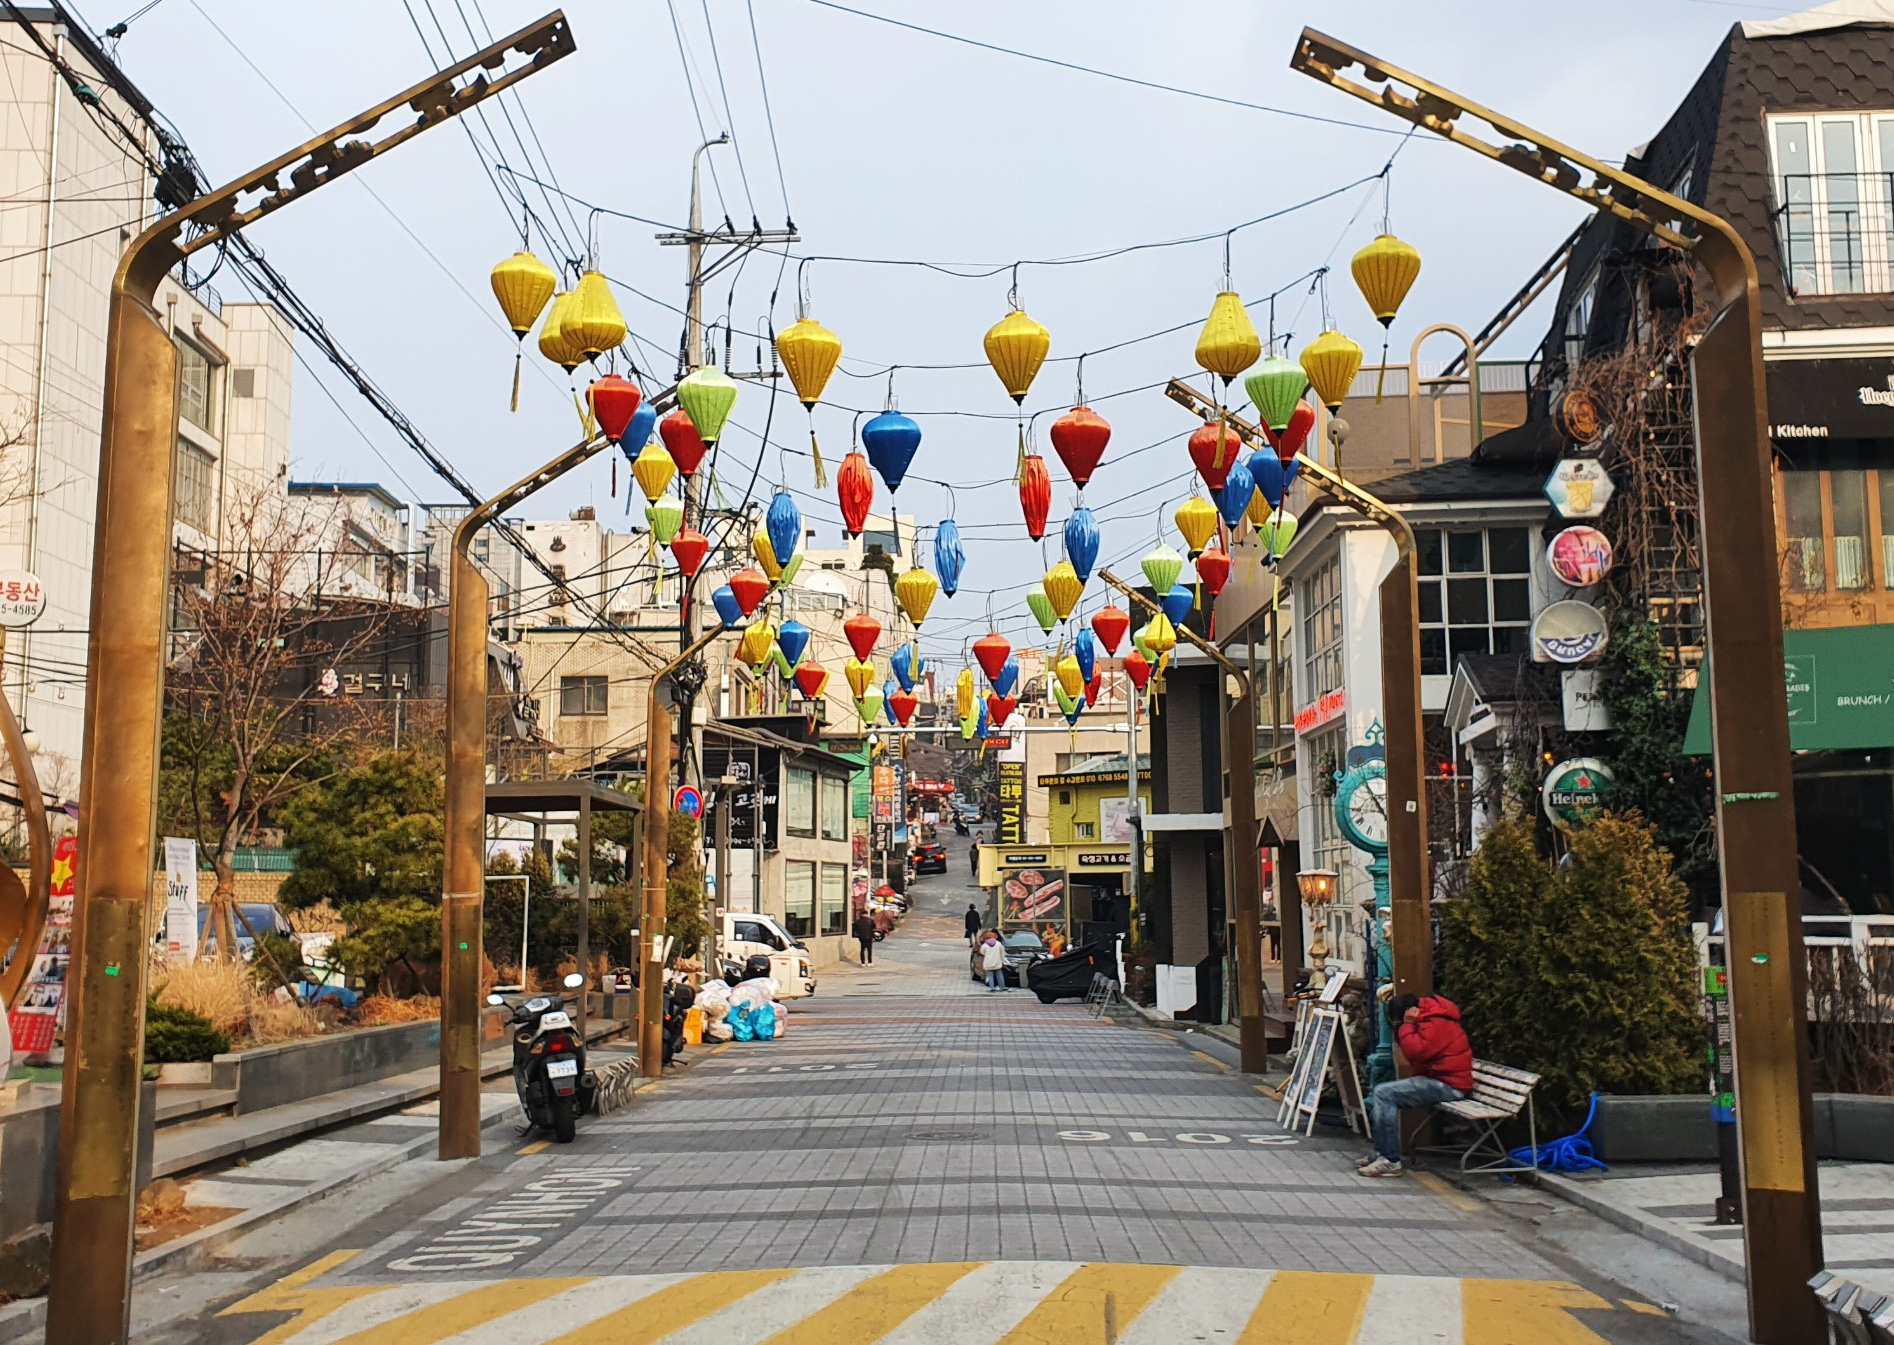 Quy Nhon Street in Itaewon is decorated with lanterns and wall graffiti, which are jointly designed by Yongsan District and Quy Nhon City. The creation of the graffiti wall was supported by the Vietnamese students' council at Sookmyung Women's University, multicultural families, and resident volunteers. The road was inaugurated in 2016 and highlights reconciliation efforts between South Korea and Quy Nhon, where ROK troops committed wartime crimes. Photo: Le Dung / Tuoi Tre